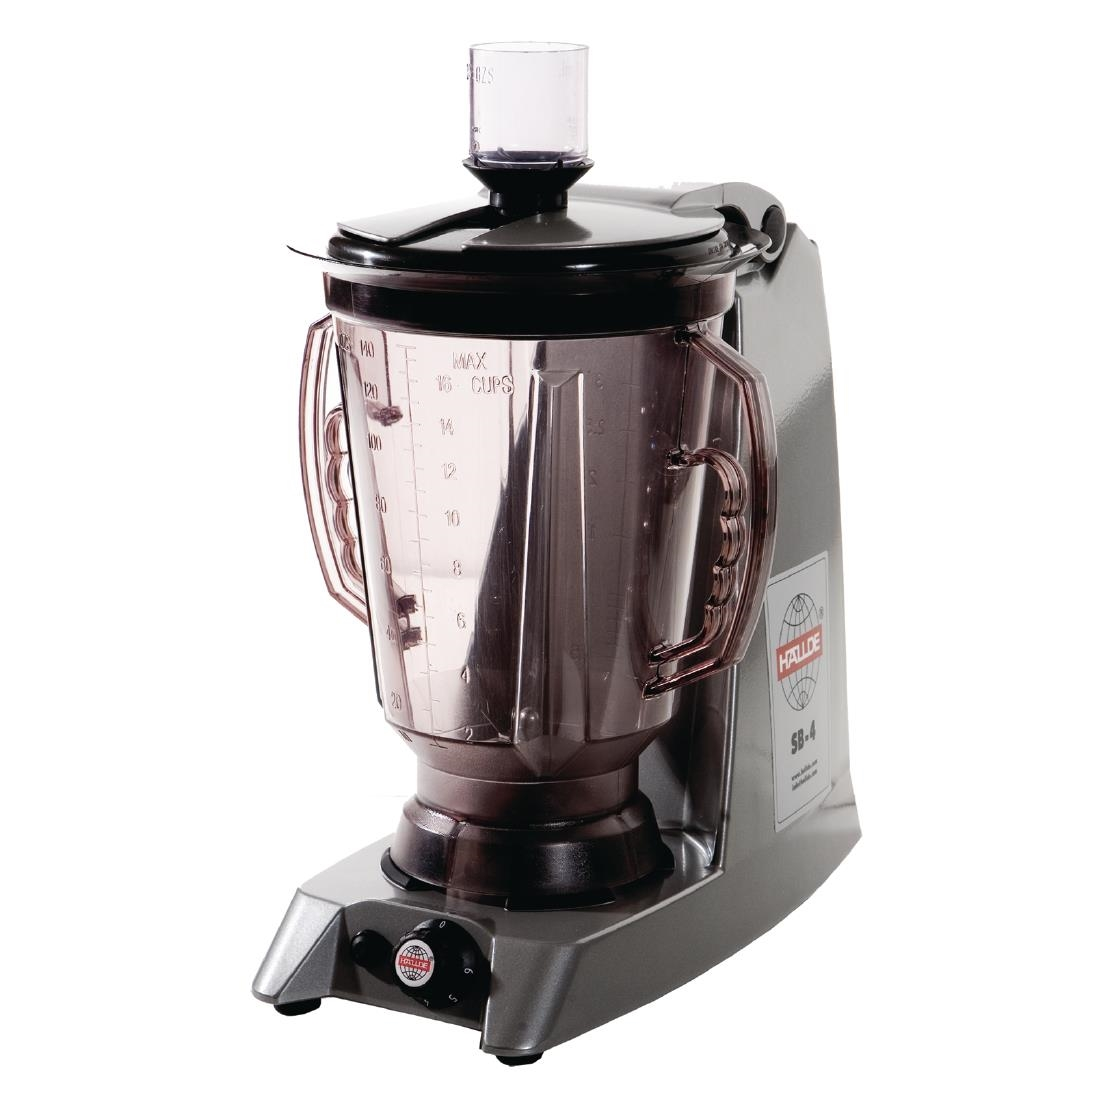 Image of Hallde Kitchen Blender SB-4